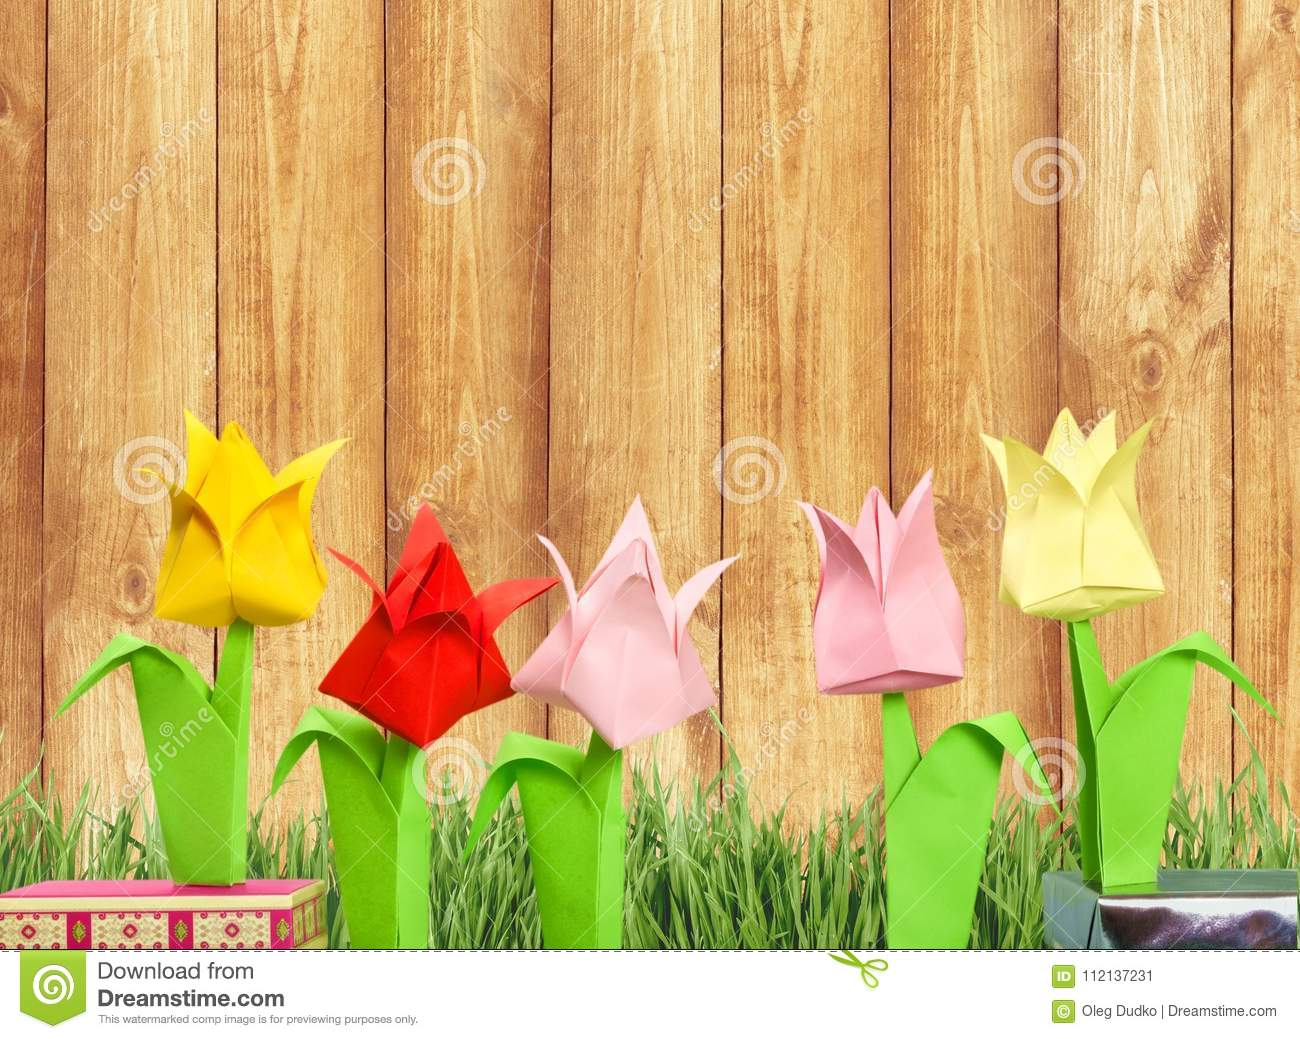 Cute origami flowers on background stock image image of greeting cute origami flowers on background mightylinksfo